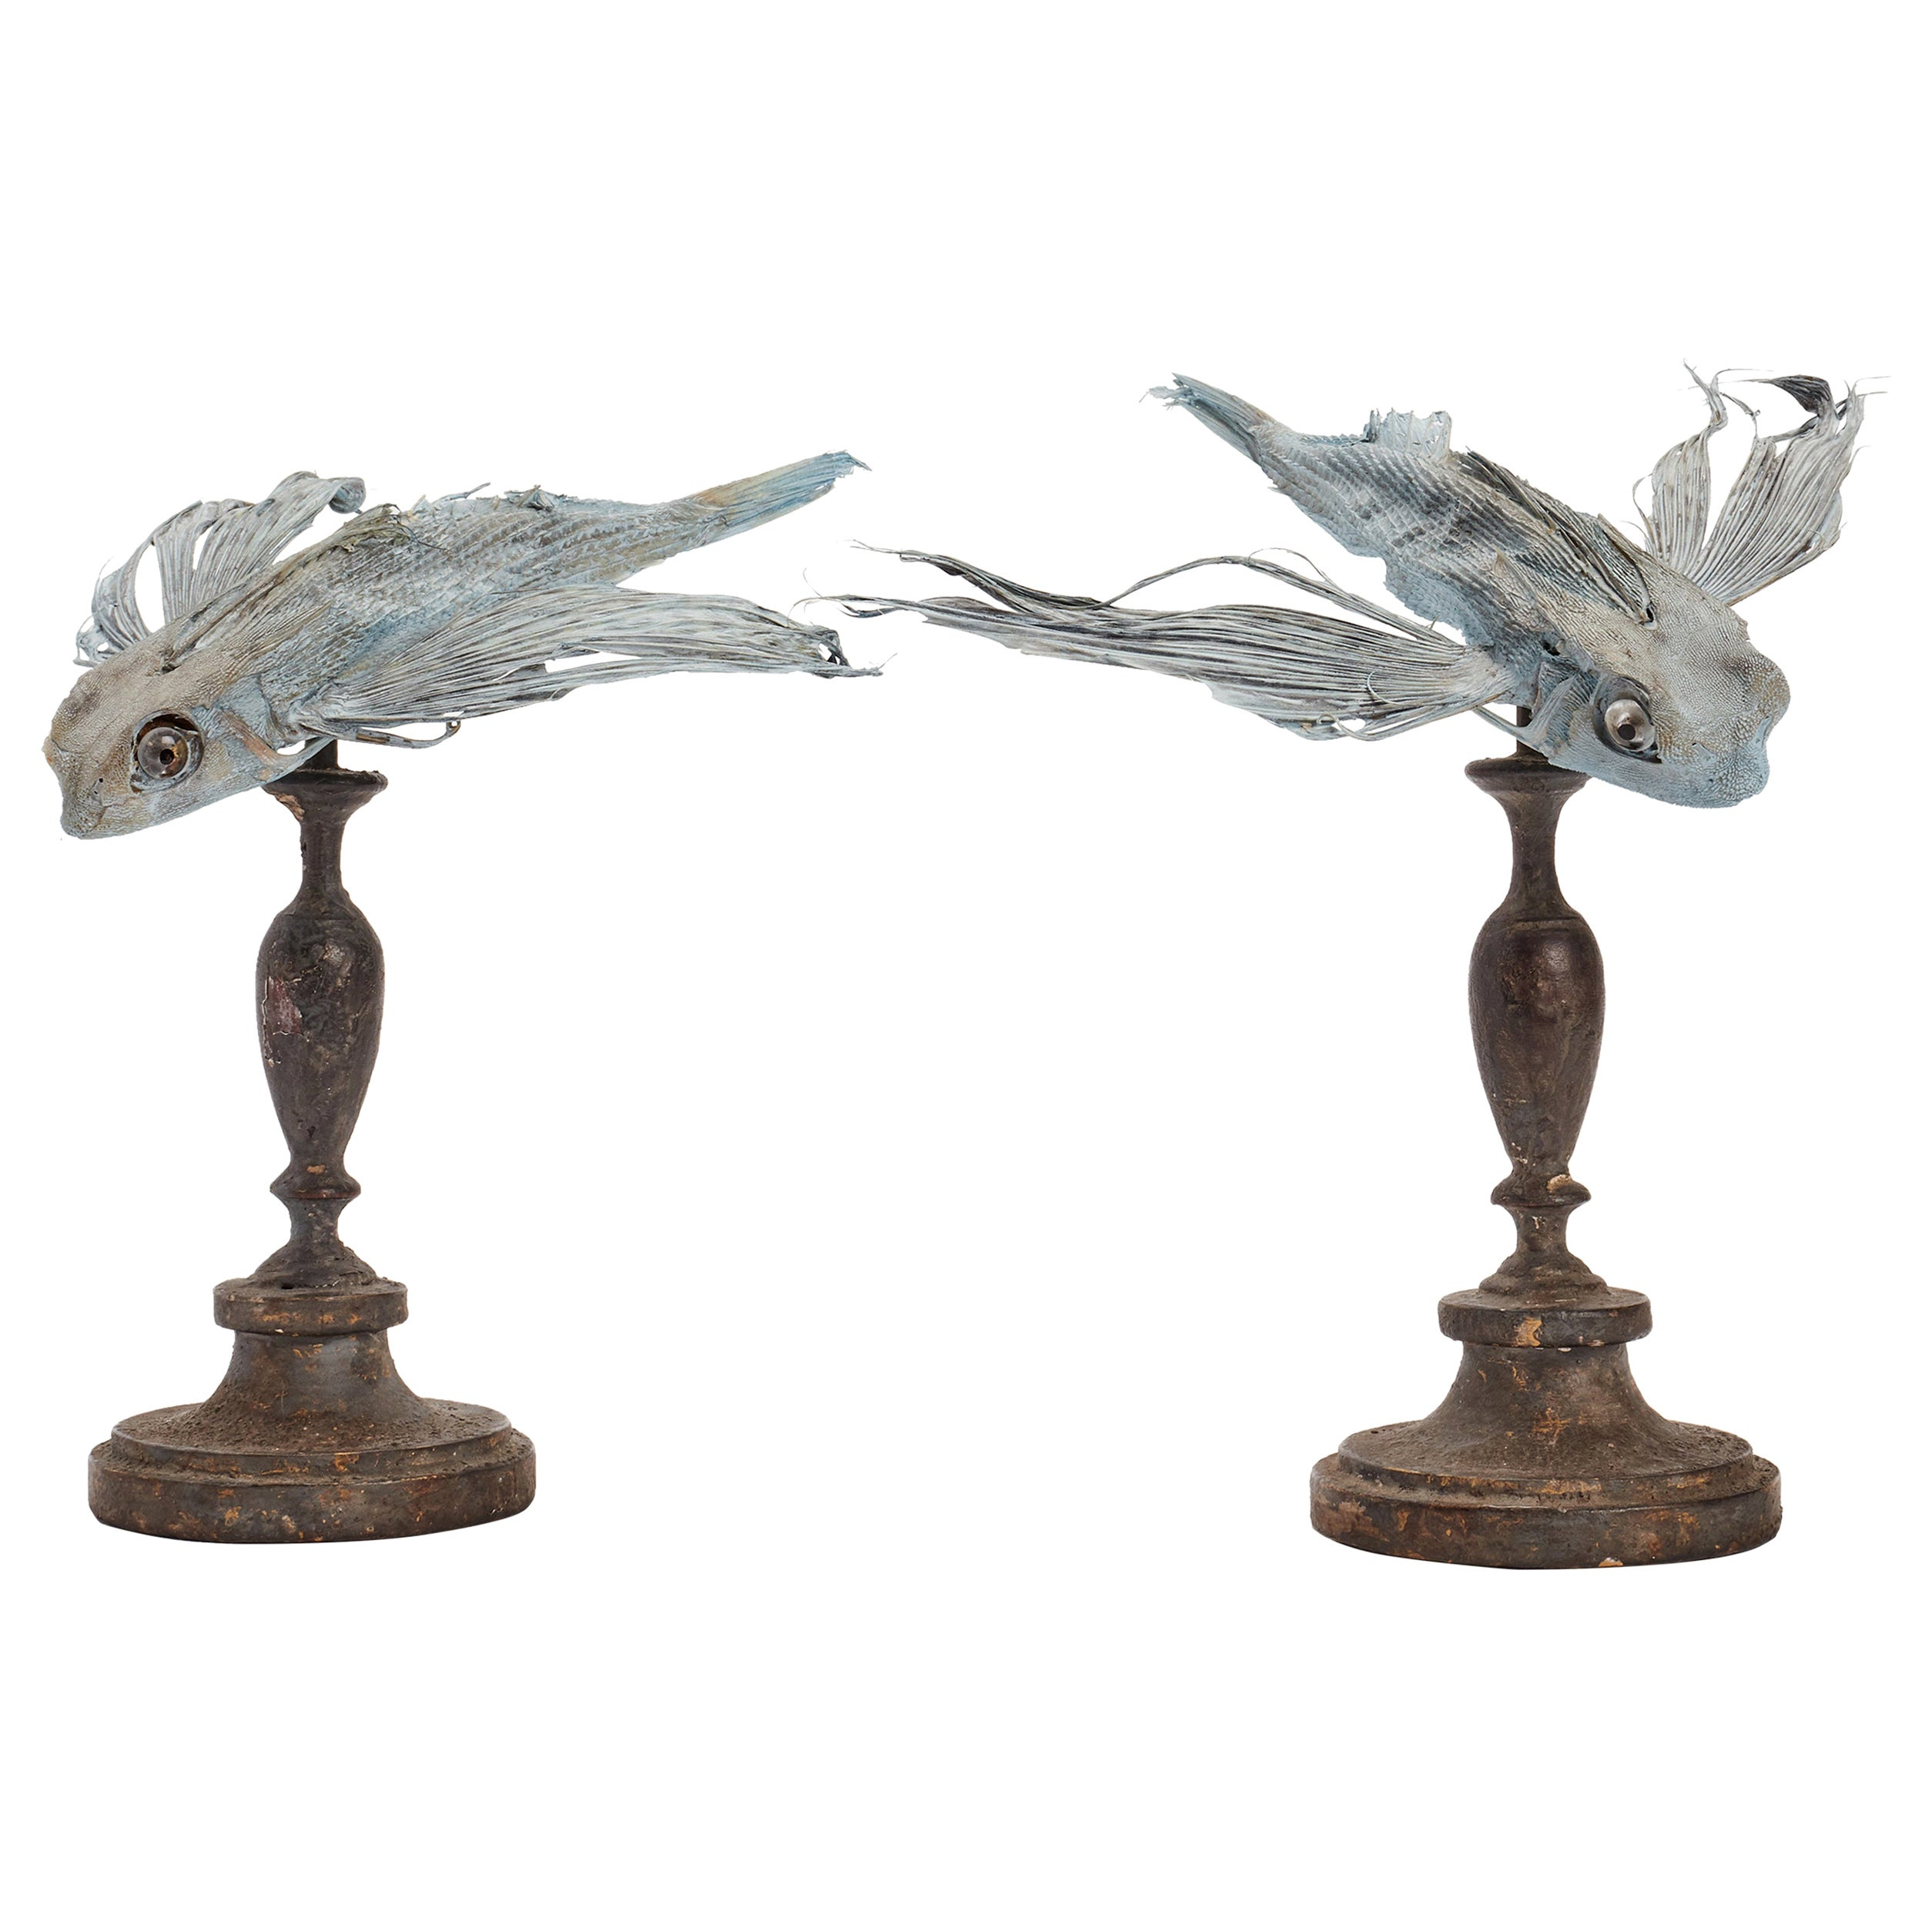 Marine Specimen a Taxidermy Flying Fishes, Italy, 1880